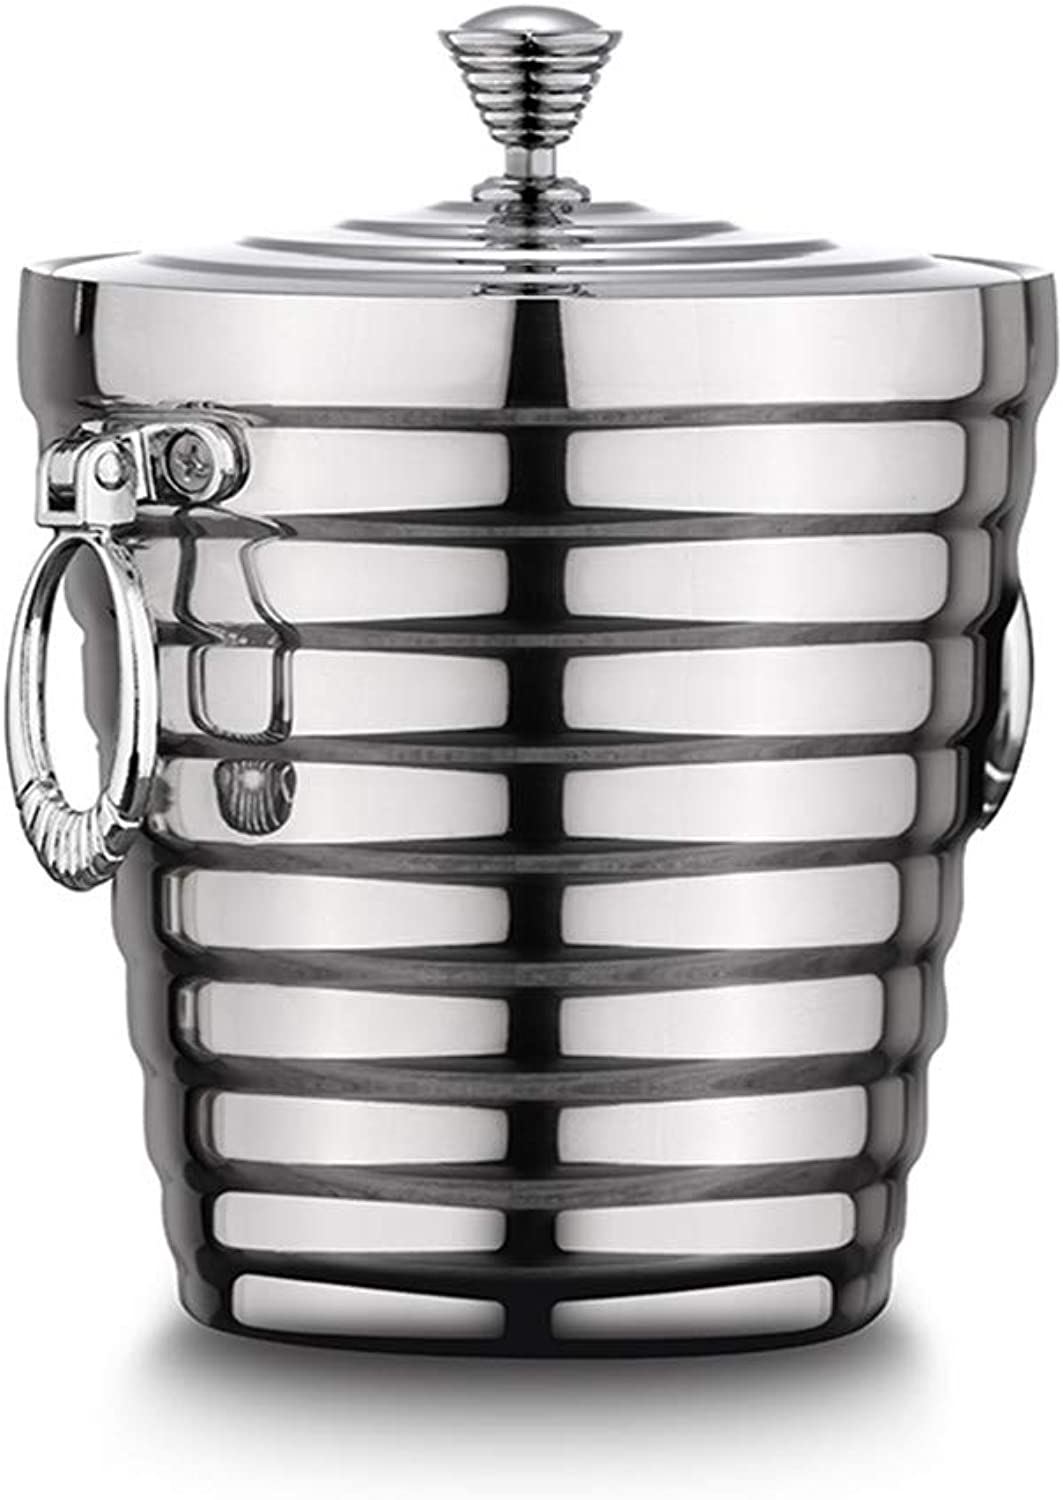 Stainless Steel Ice Bucket Set with Sealed Lid and Ice Pliers - Double Insulated Ice Bucket Non-Slip Seal Leakproof Mirror Polish Finish for Bar Camping,M